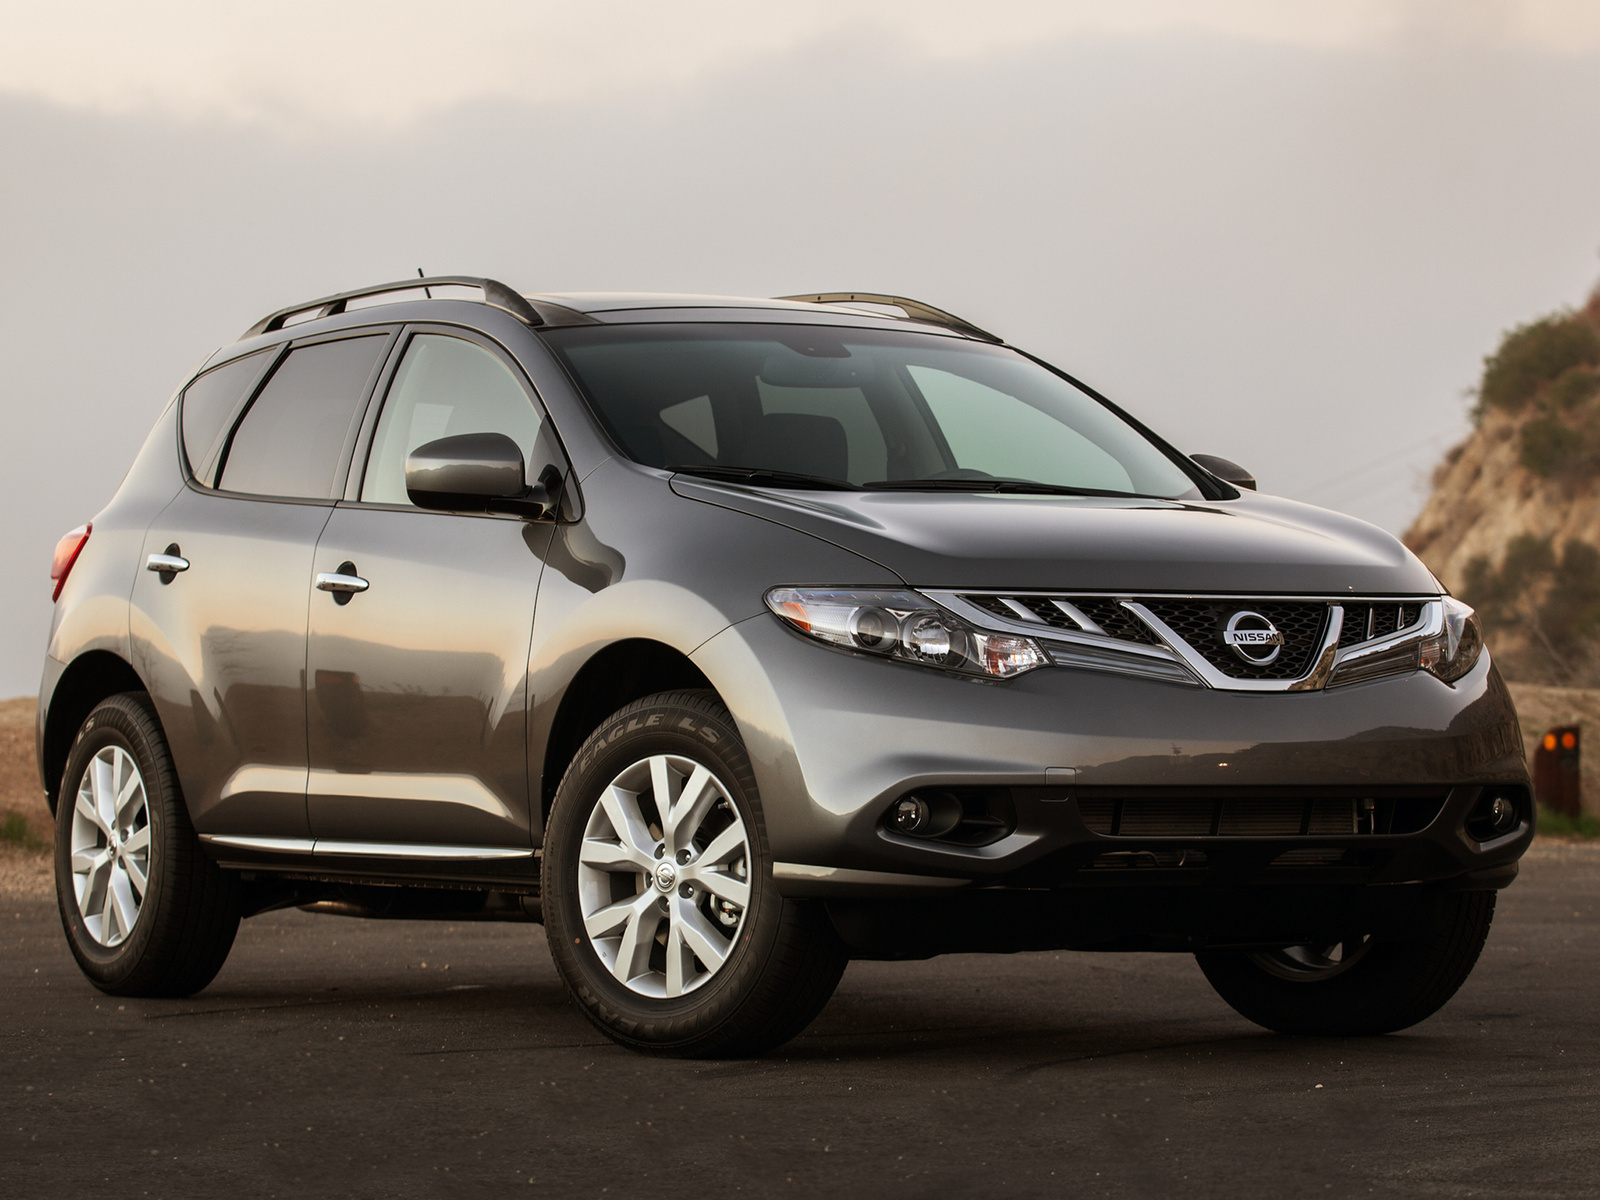 Home / Research / Nissan / Murano / 2013